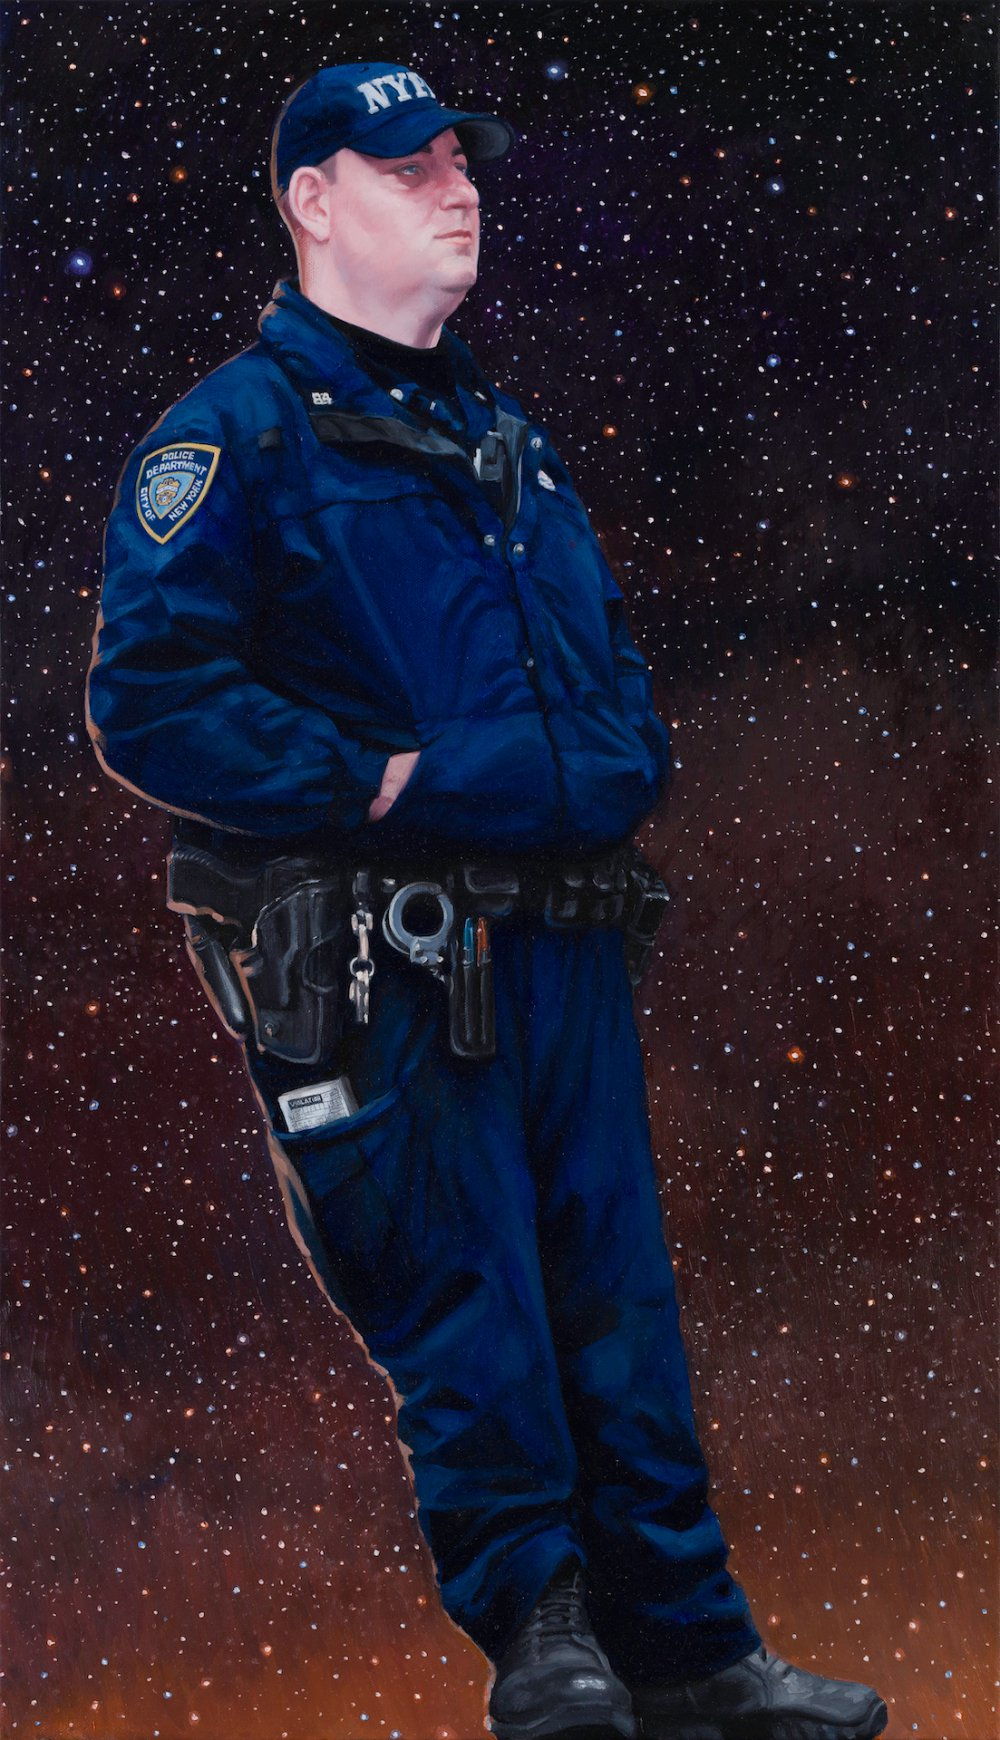 THE MATTER OVER NYPD OFFICER